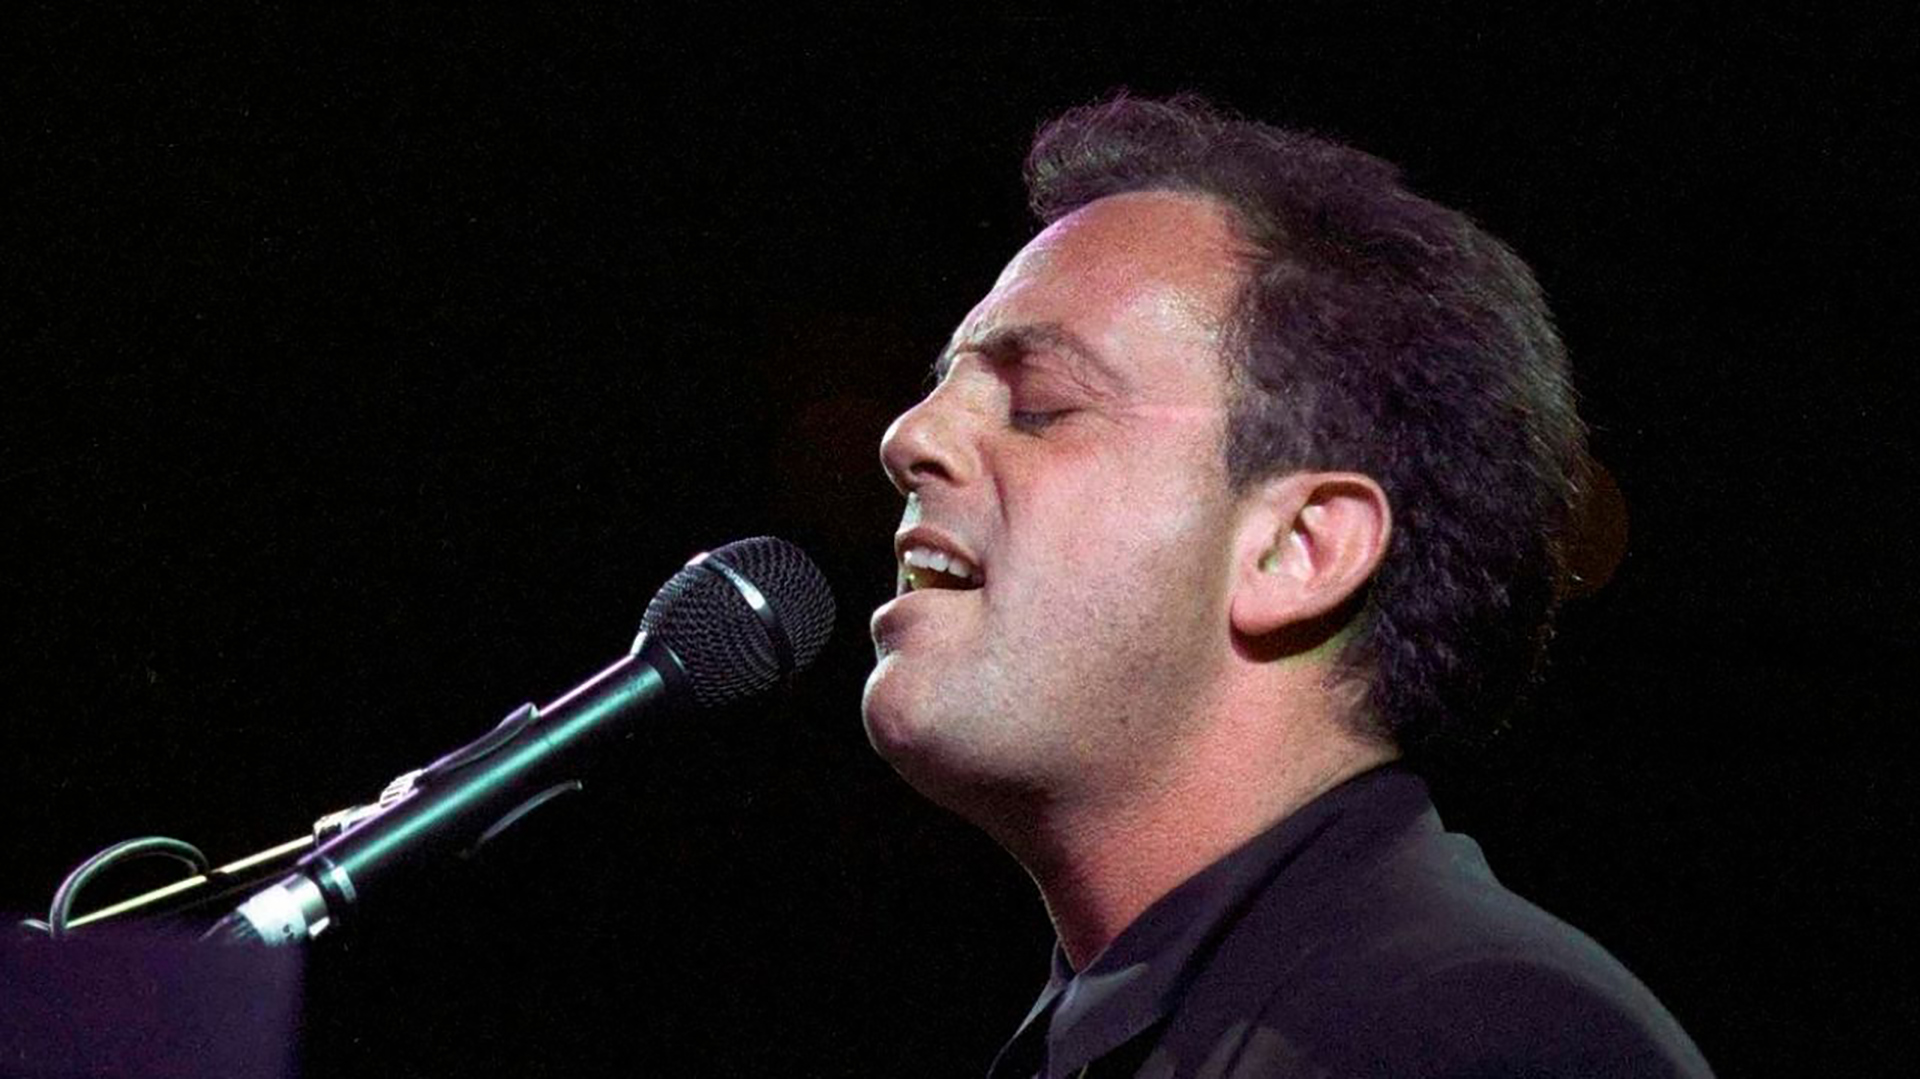 Billy Joel performing live.